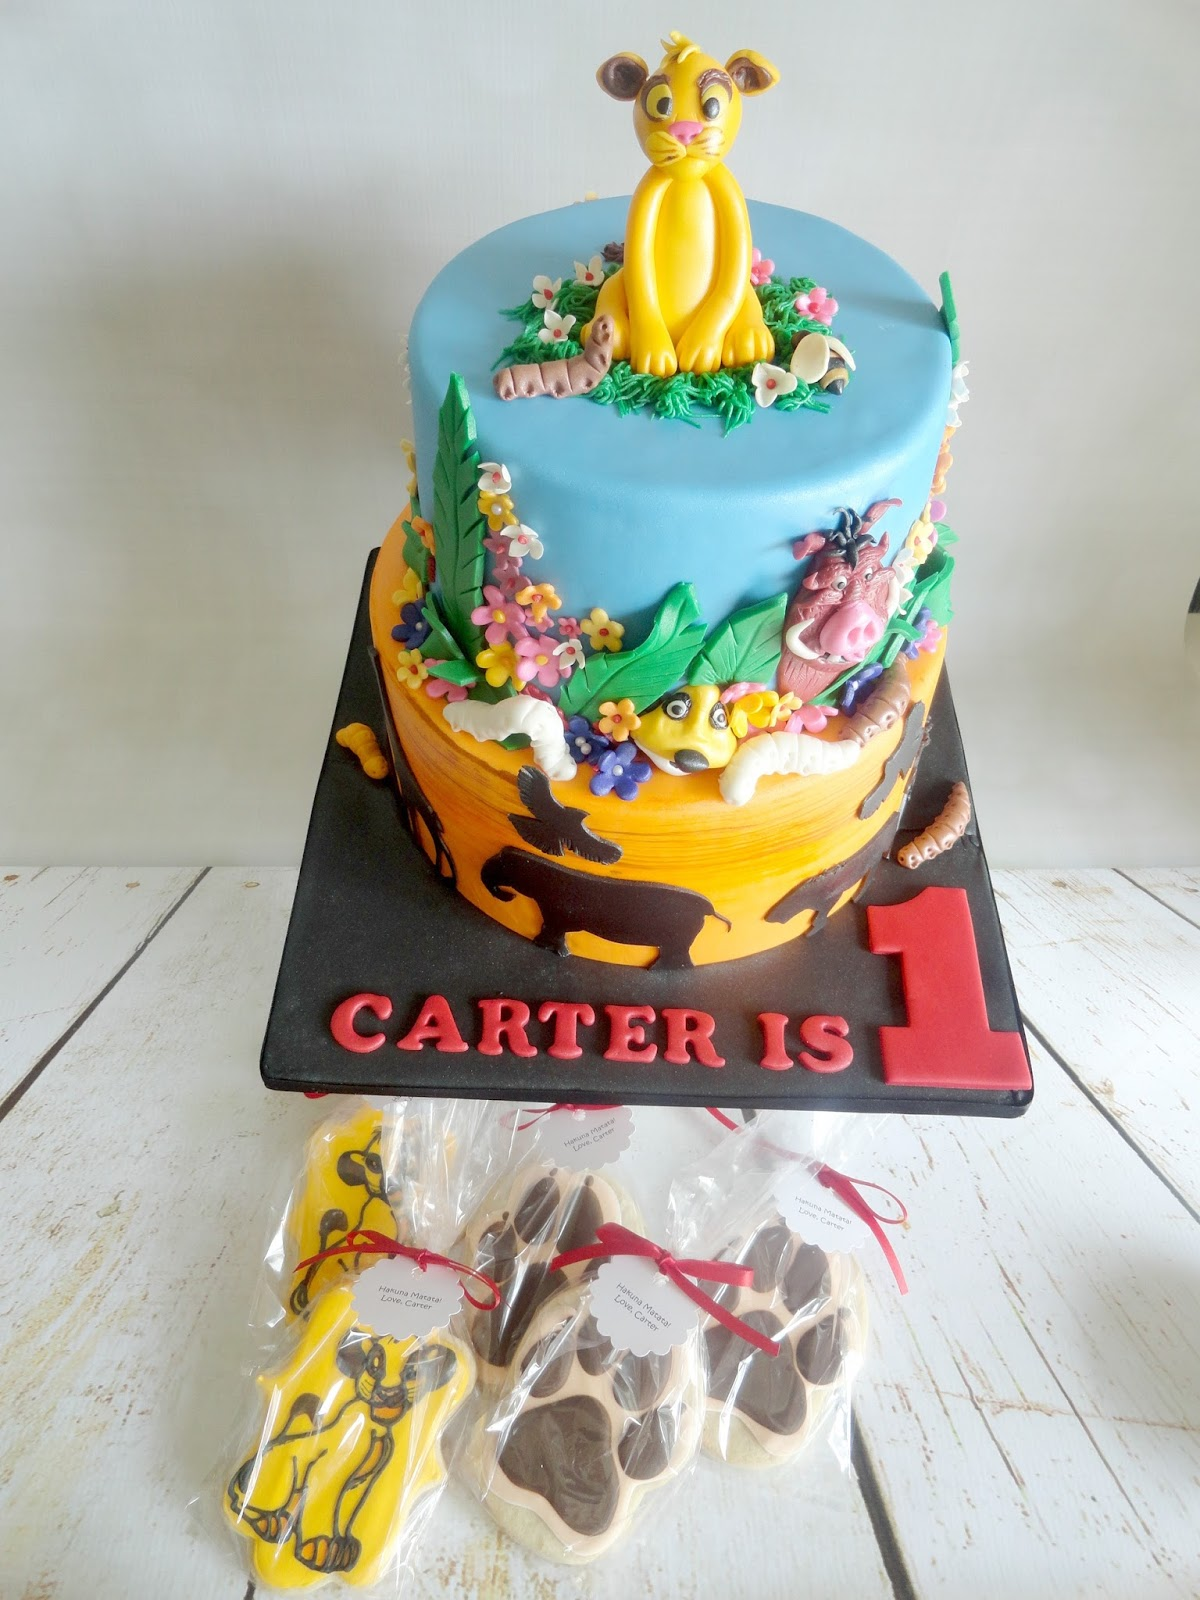 All Details Are Handmade In Sugar